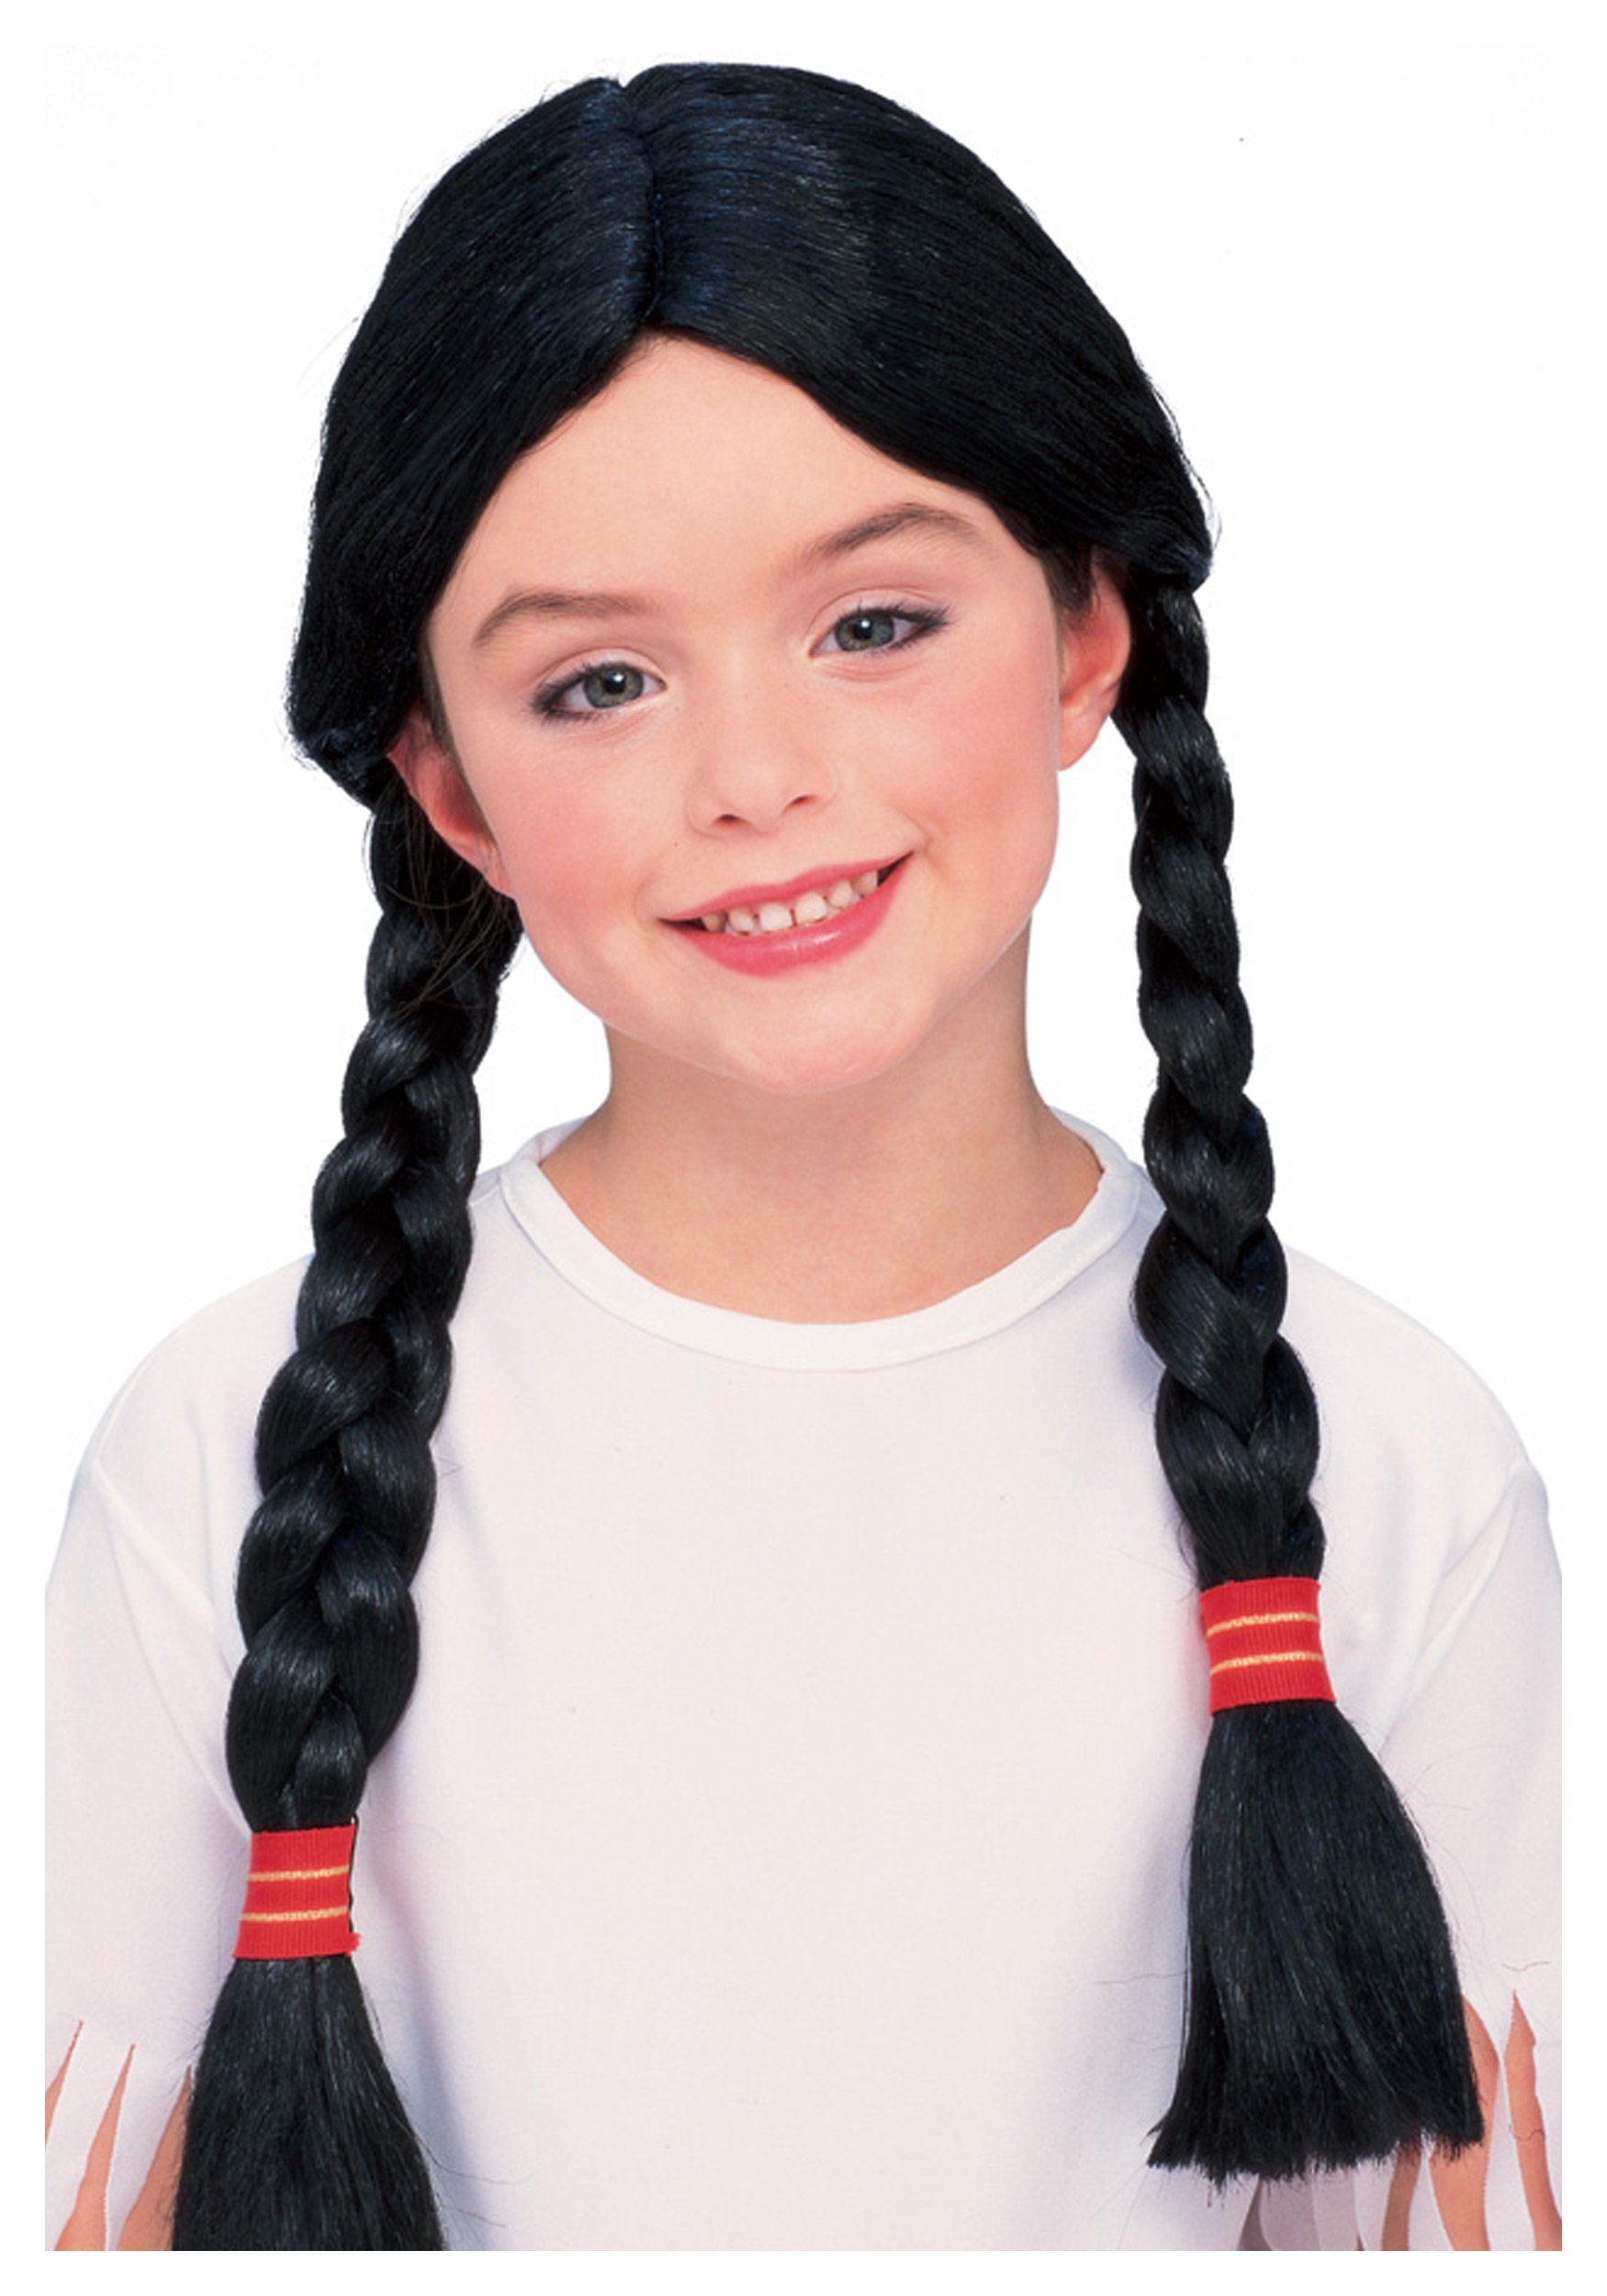 Kids Native American Costume Wig  sc 1 st  Halloween Costumes & Girls Native American Costume Wig